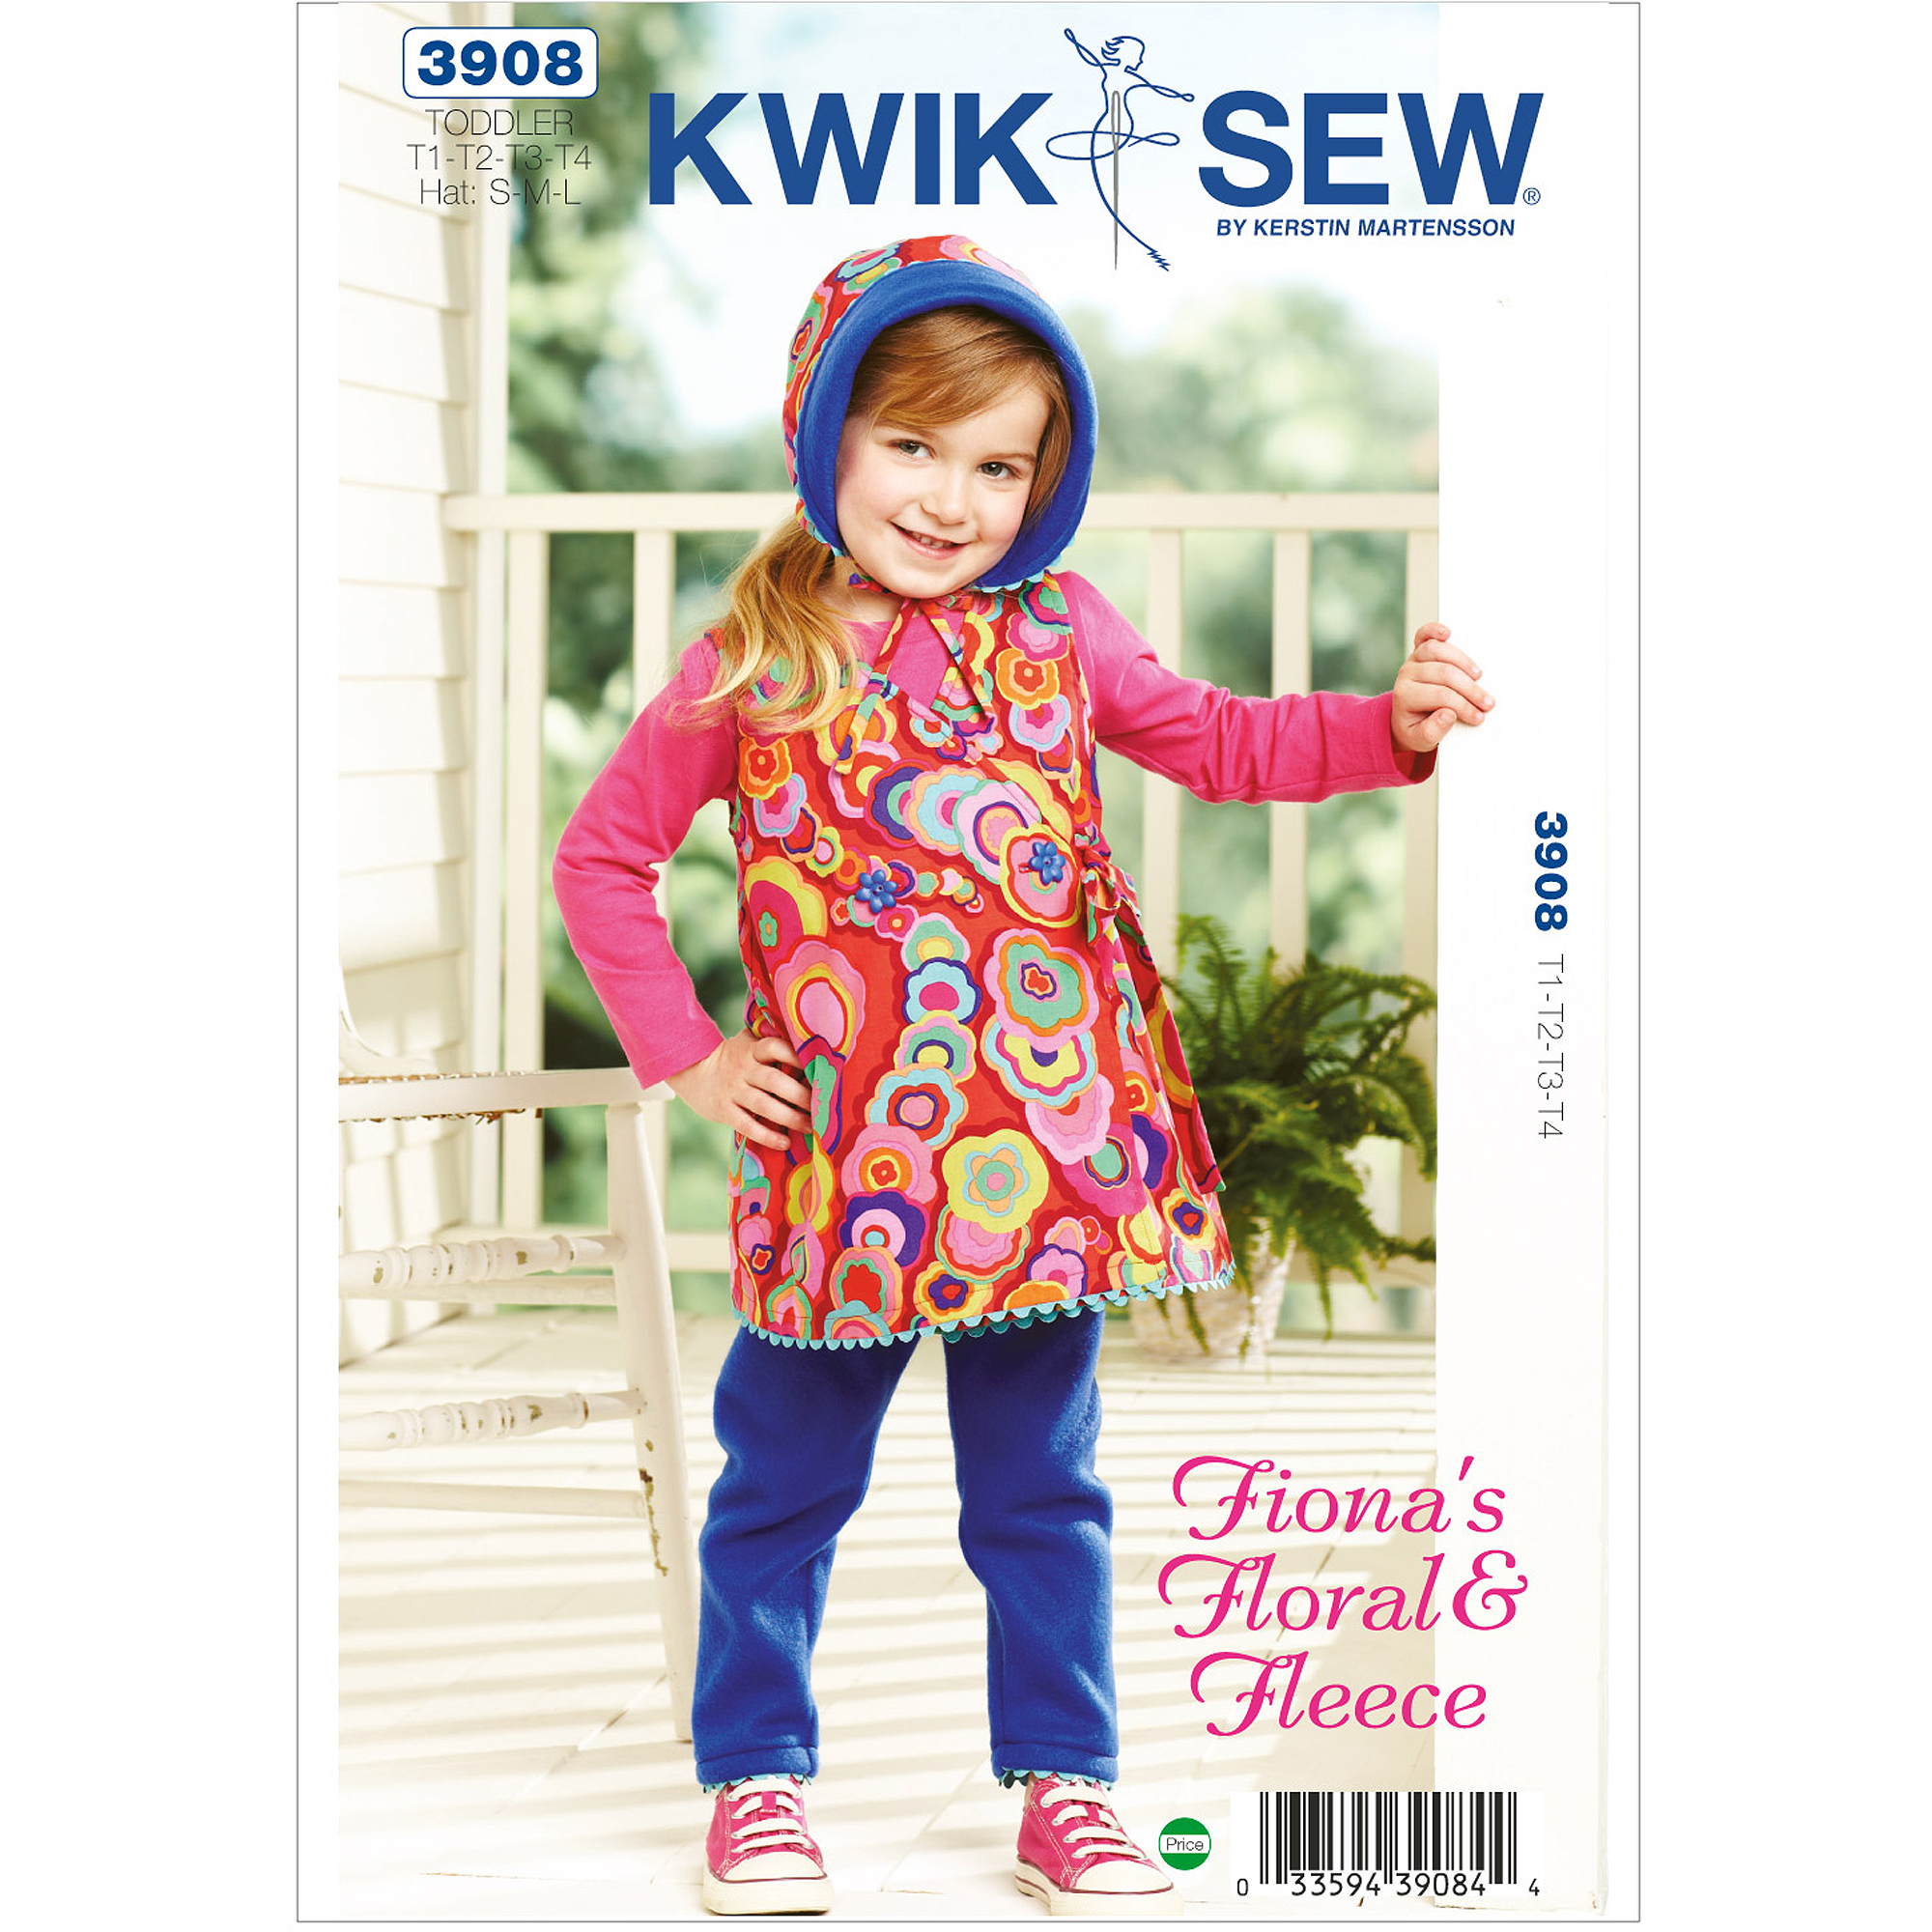 Kwik Sew Pattern Fiona's Floral and Fleece, (T1, T2, T3, T4), Hat: (S, M, L)